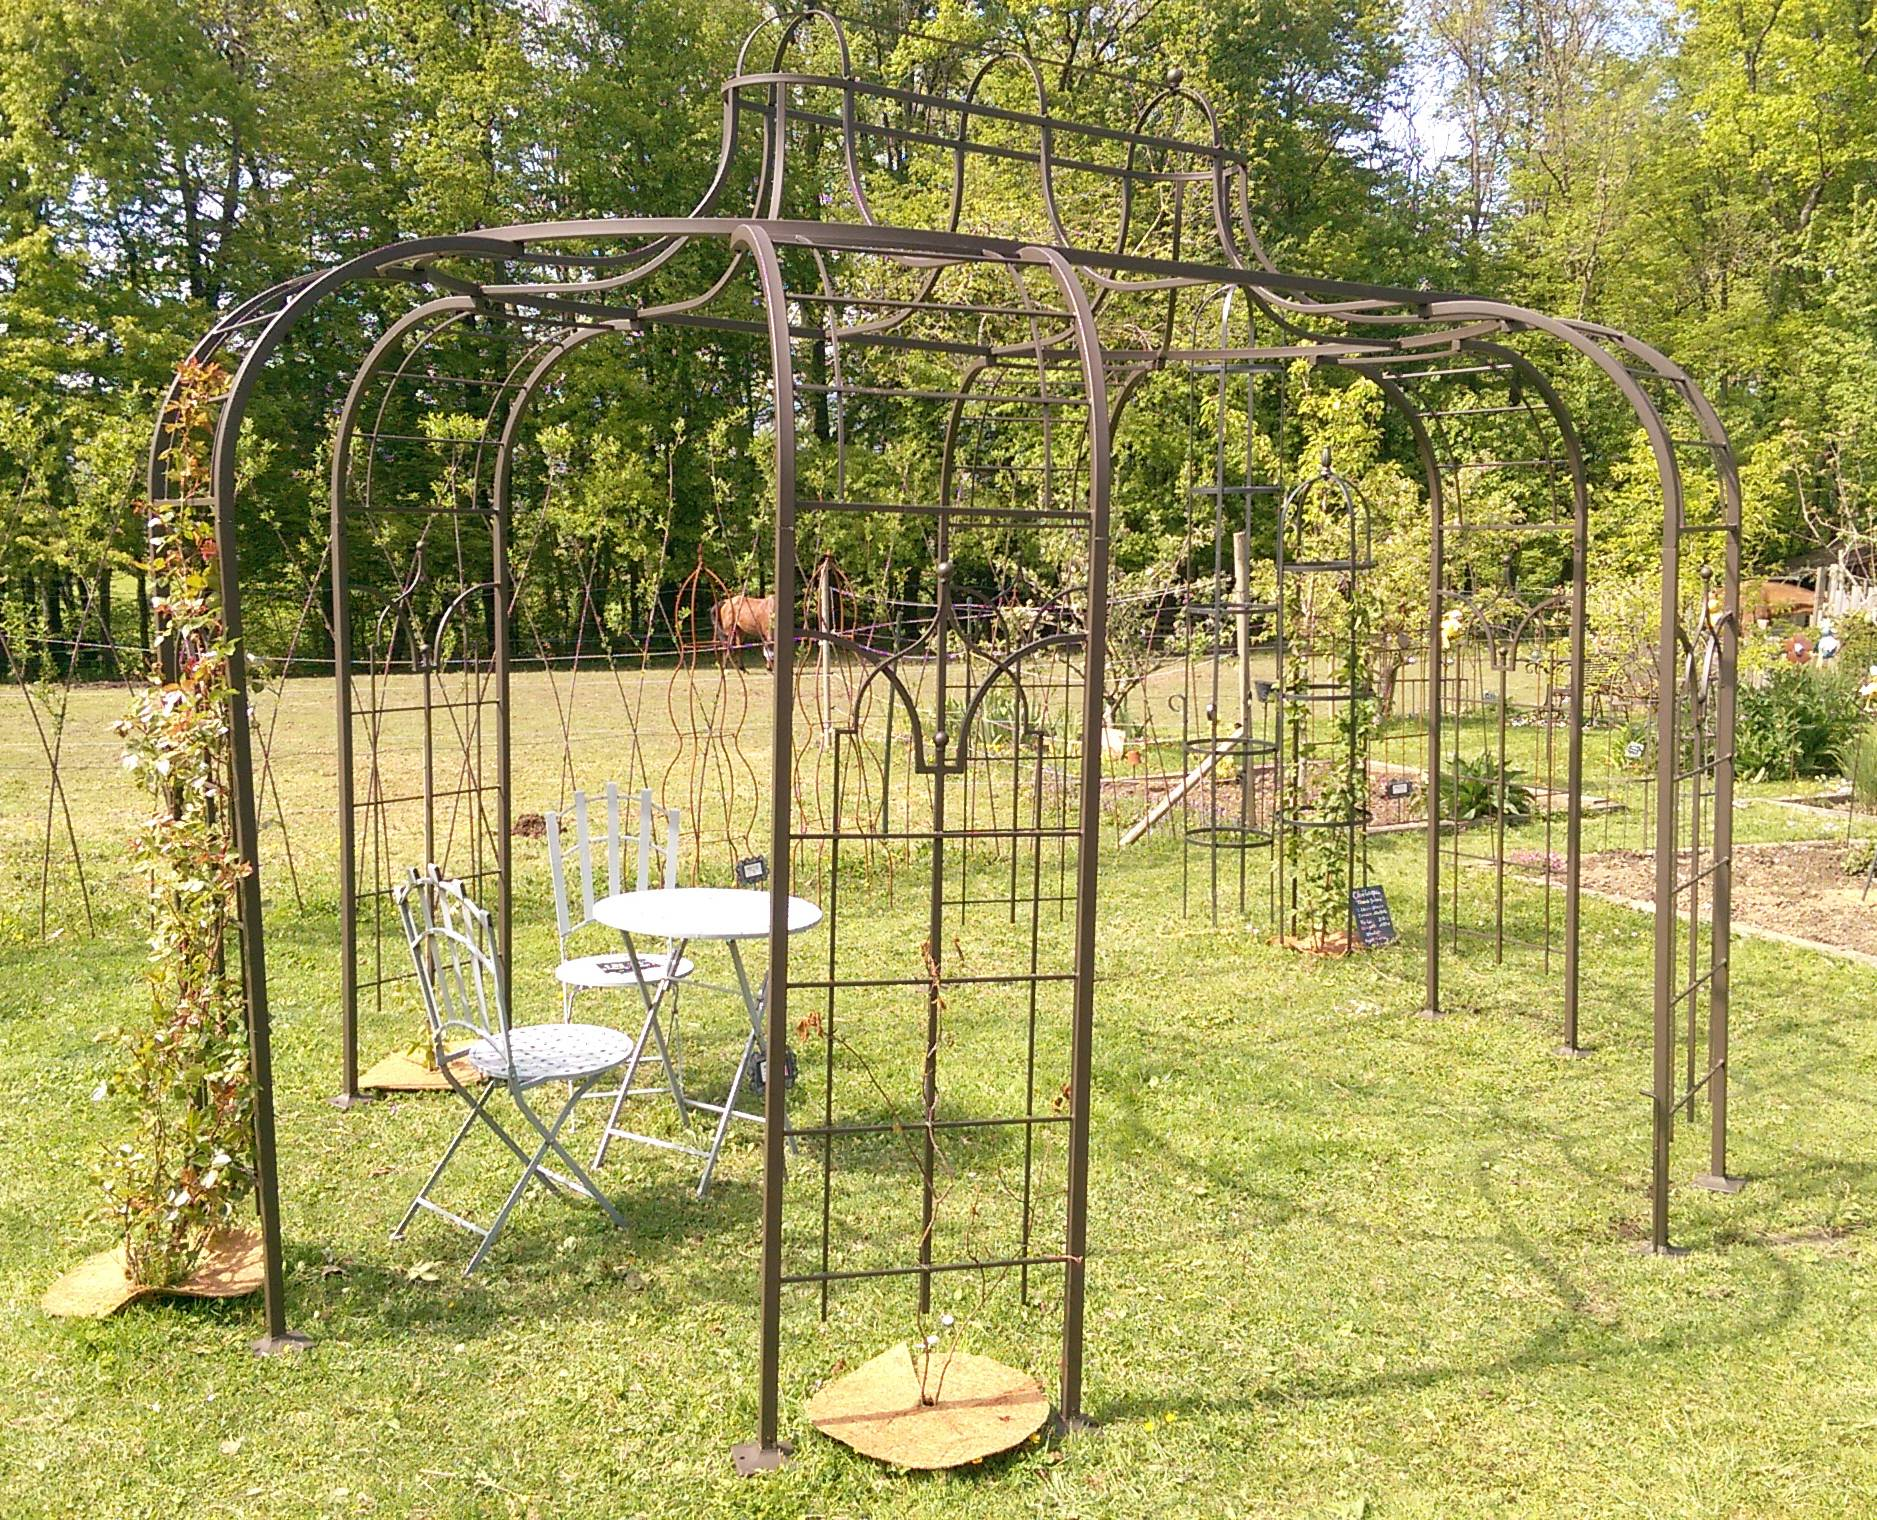 gloriette fer forge fashion designs With beautiful gloriette de jardin en fer forge 0 fabrication de gloriettes kiosques de jardin en fer forge